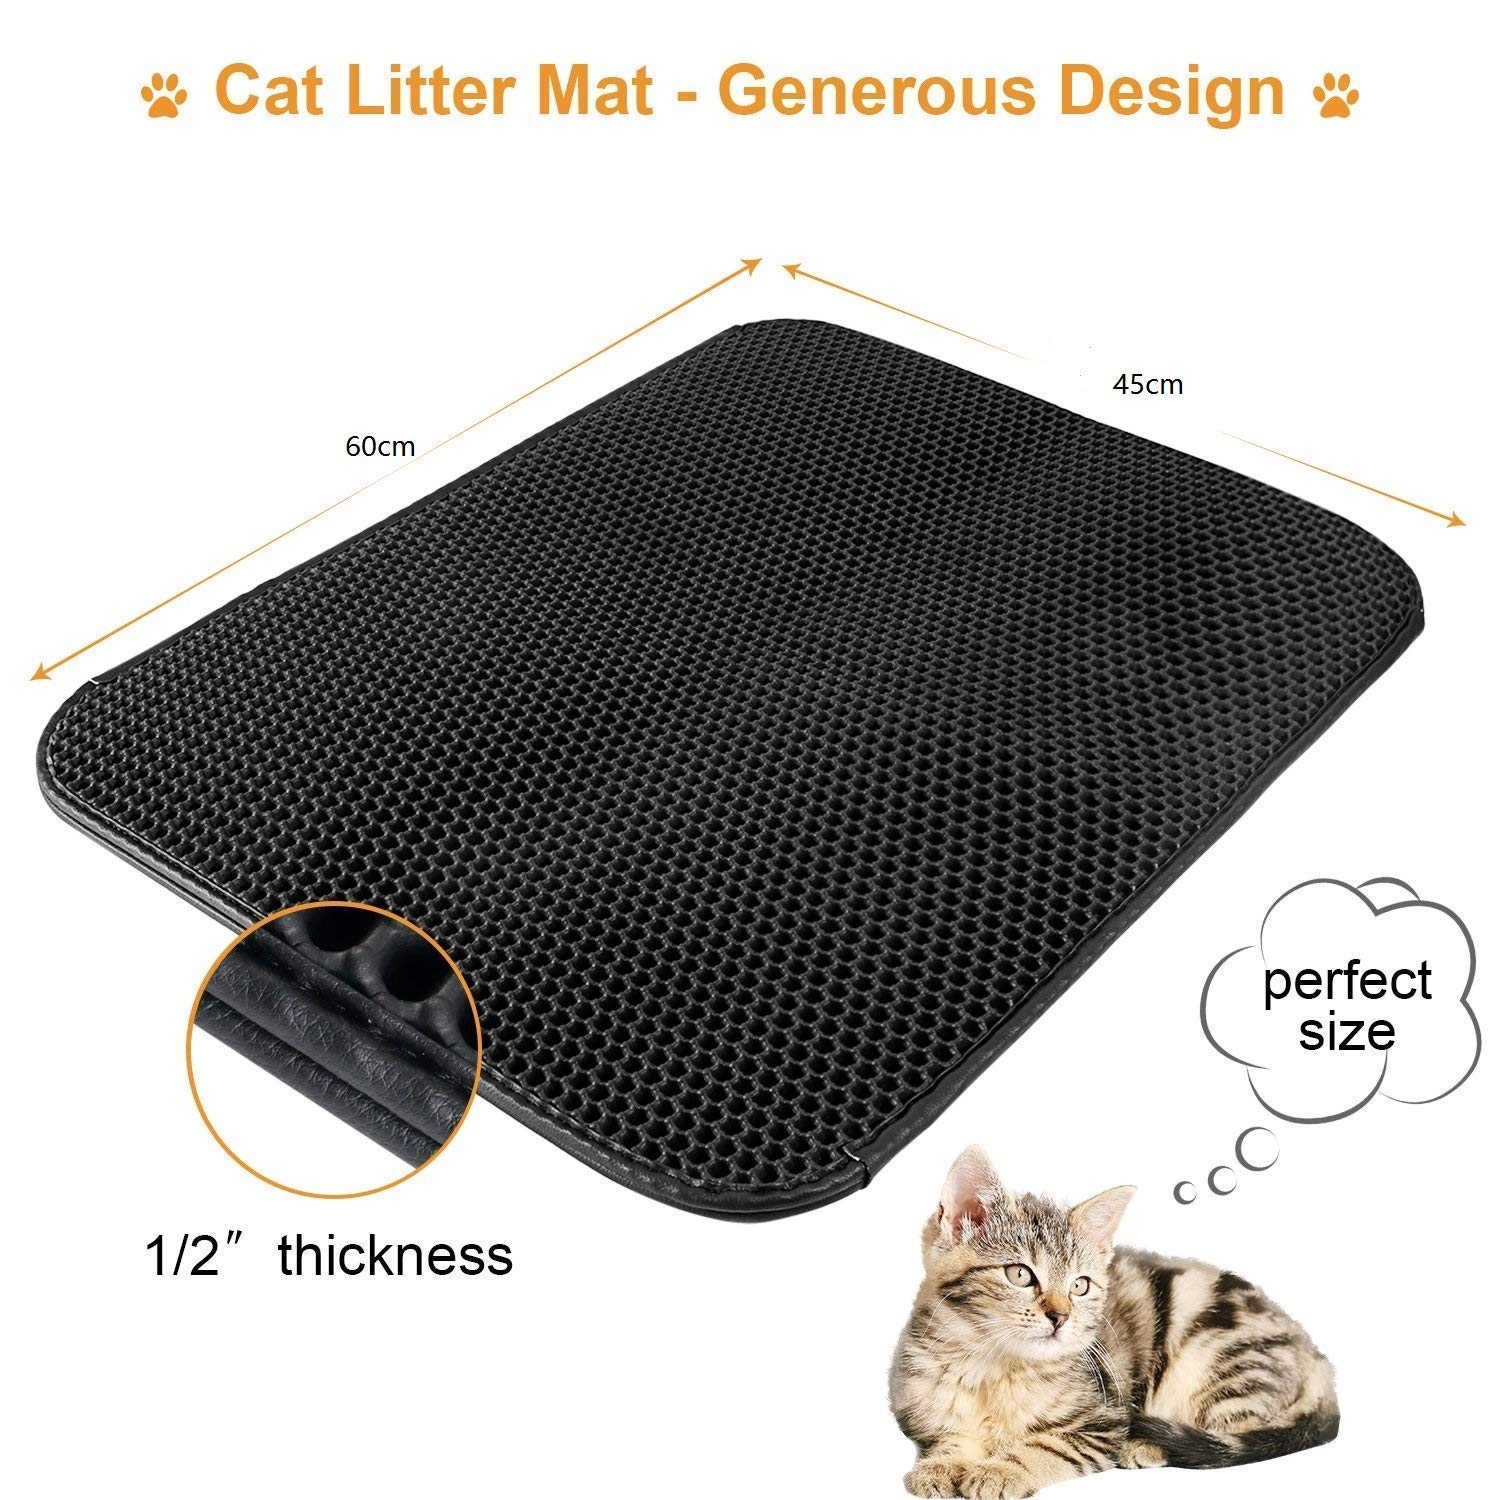 Non Toxic Trapper Rug Suitable for Litter Tray(Black) Widousy Cat Litter Mat Trapper 60 x 45 cm Honeycomb Double Layer Tapis Litiere Chat Easy Clean and Durable